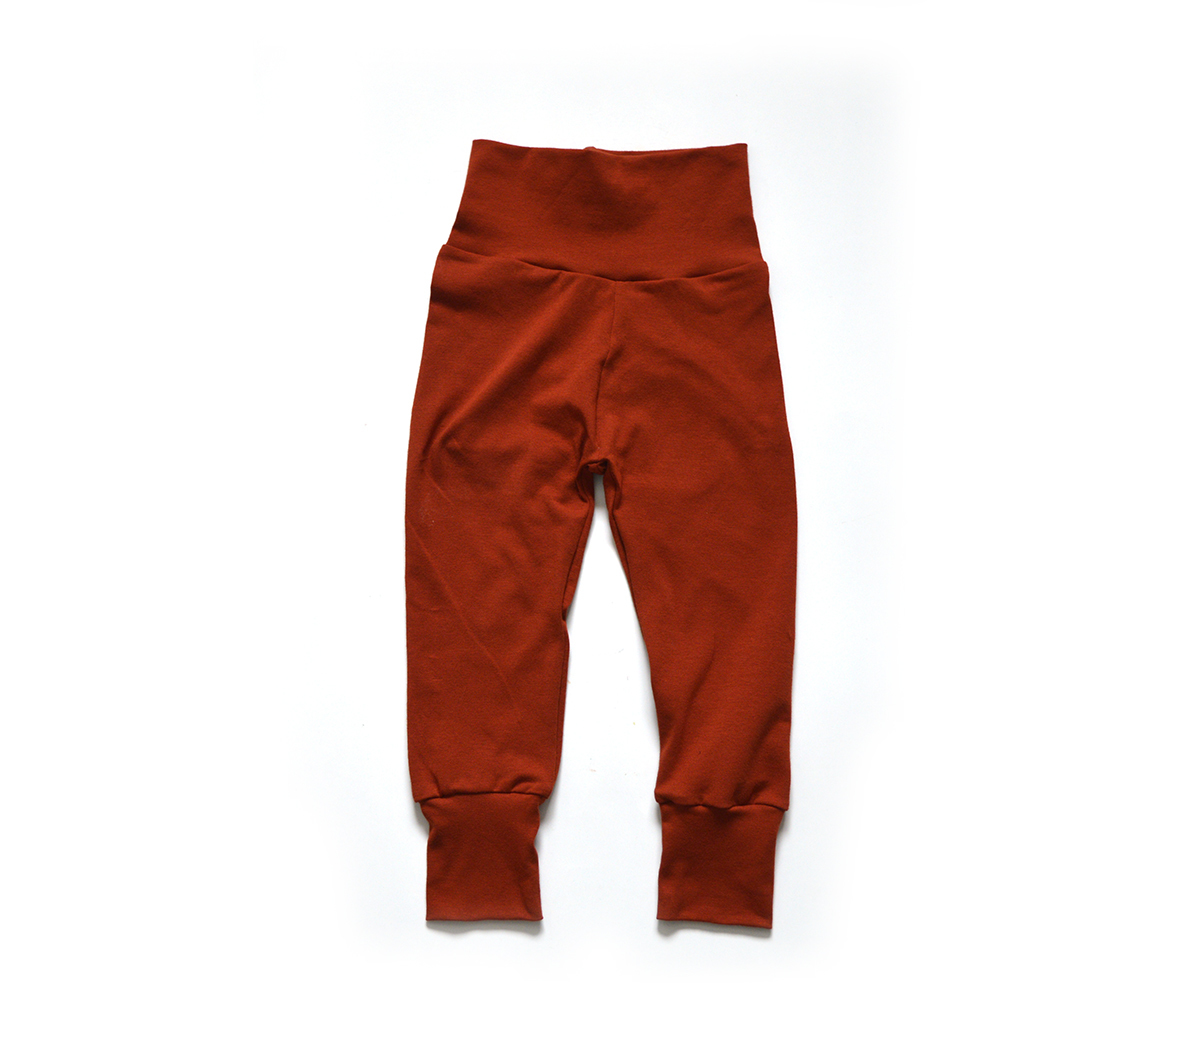 Little Sprout One-Size Pants™  Rust - Bamboo 00785